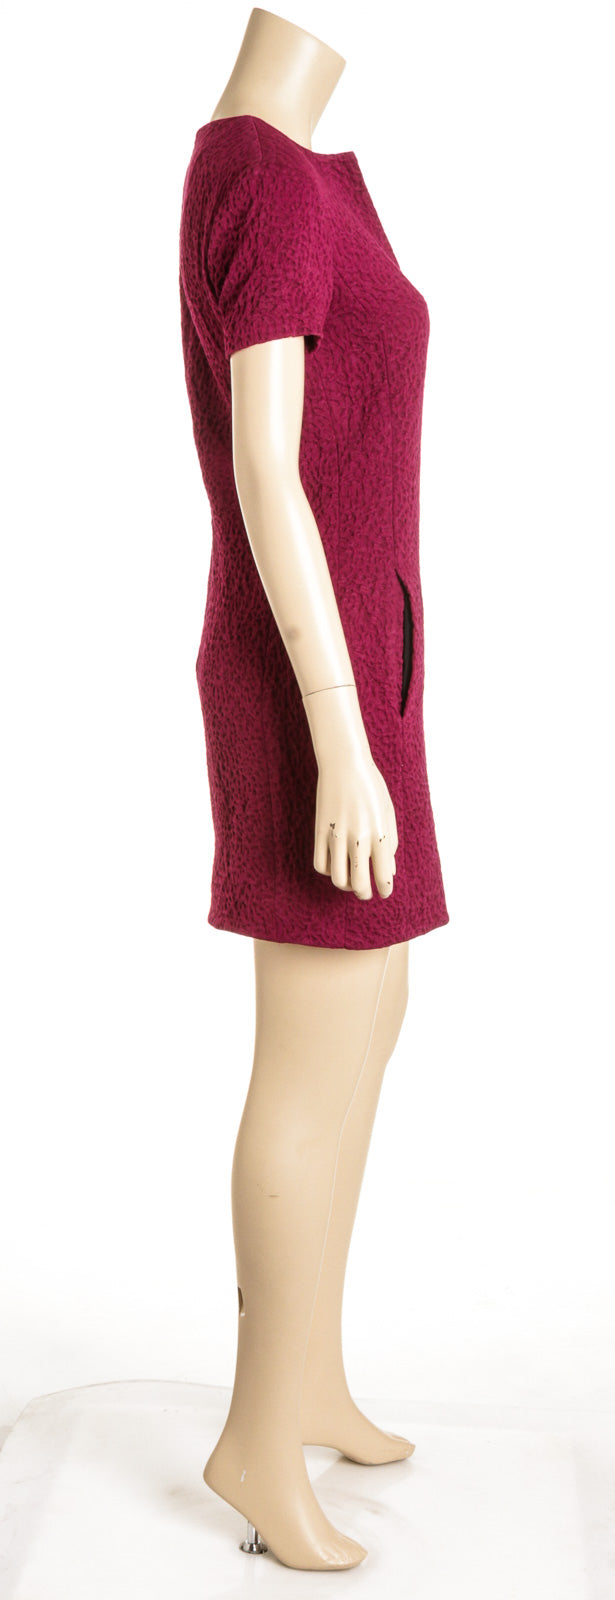 Balenciaga Magenta Cotton Mini Dress (Size 38)